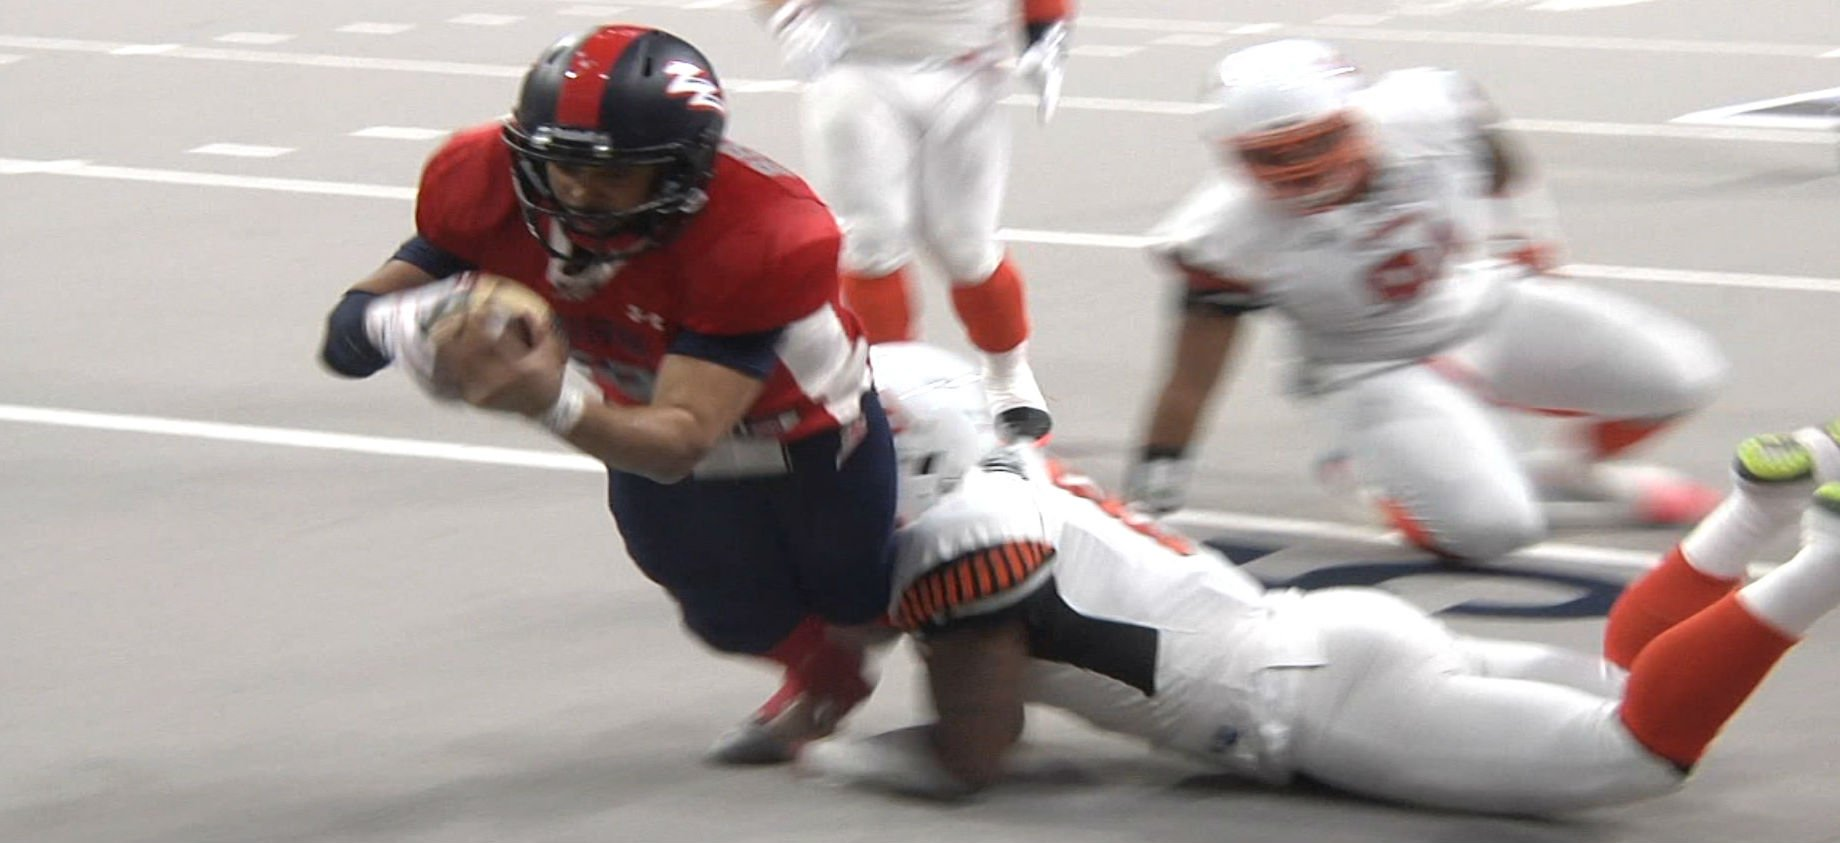 Next up: Empire take on the Rattlers Friday